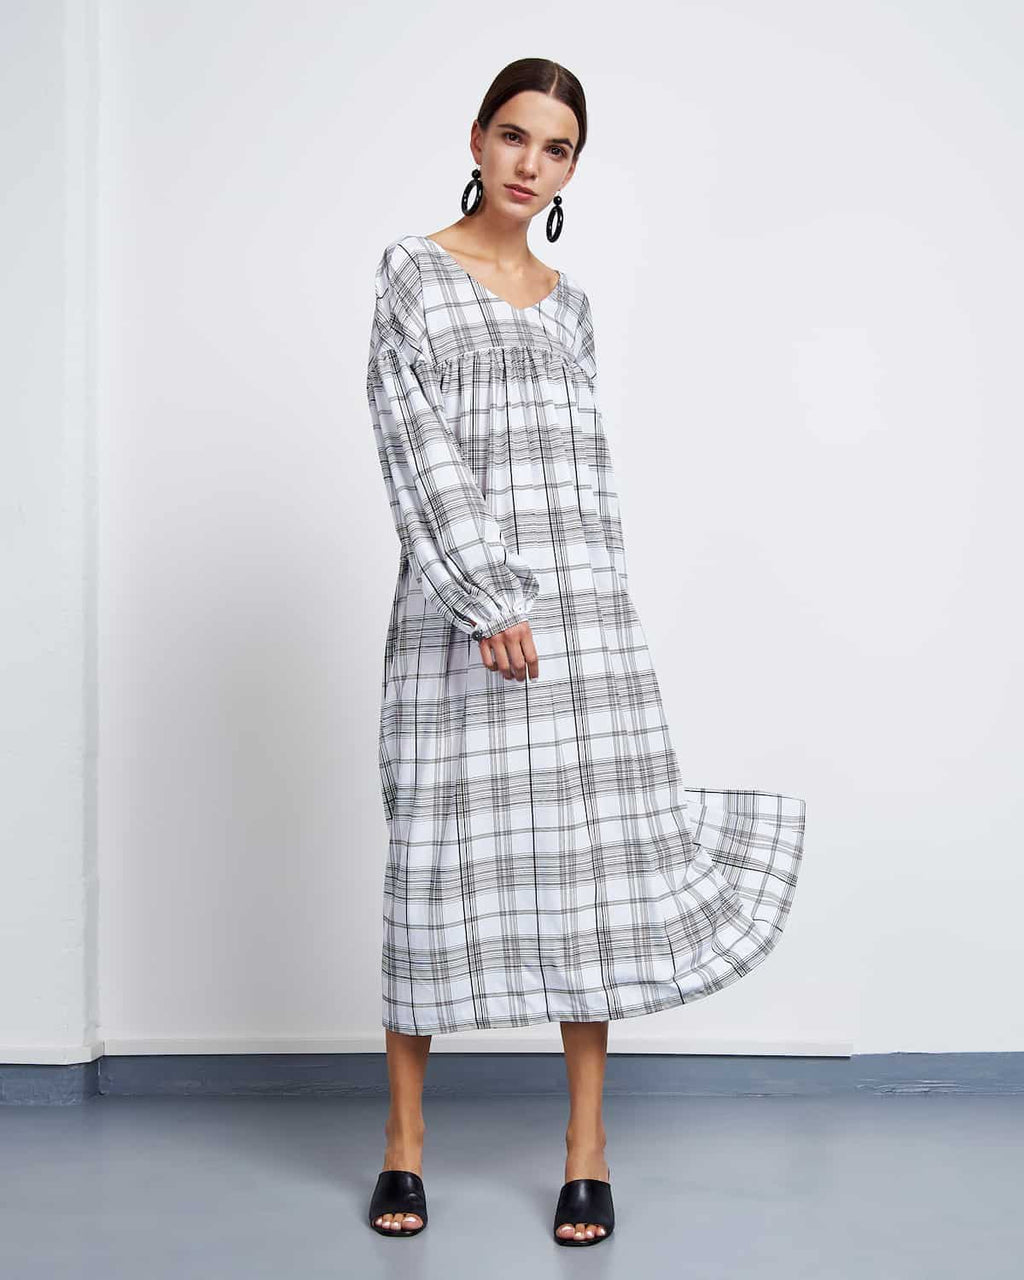 Maxi Dress Biela Checked by Jan n June